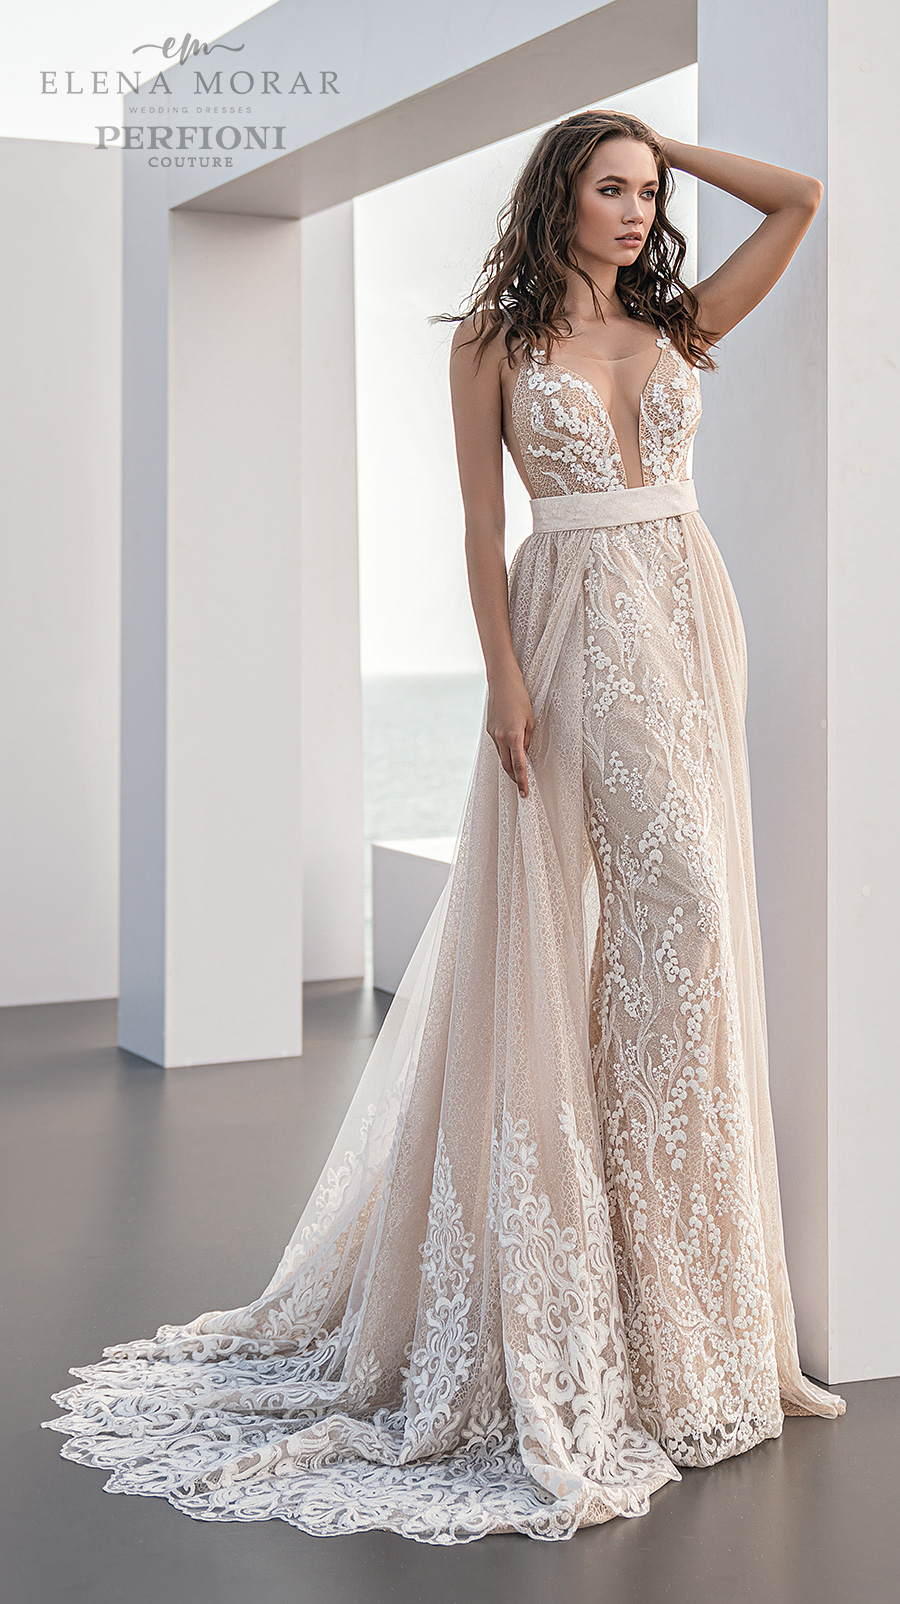 elena morar perfioni 2021 bridal sleeveless thin strap deep plunging sweetheart neckline full embellishment romantic blush sheath wedding dress a line overskirt medium train (3) mv